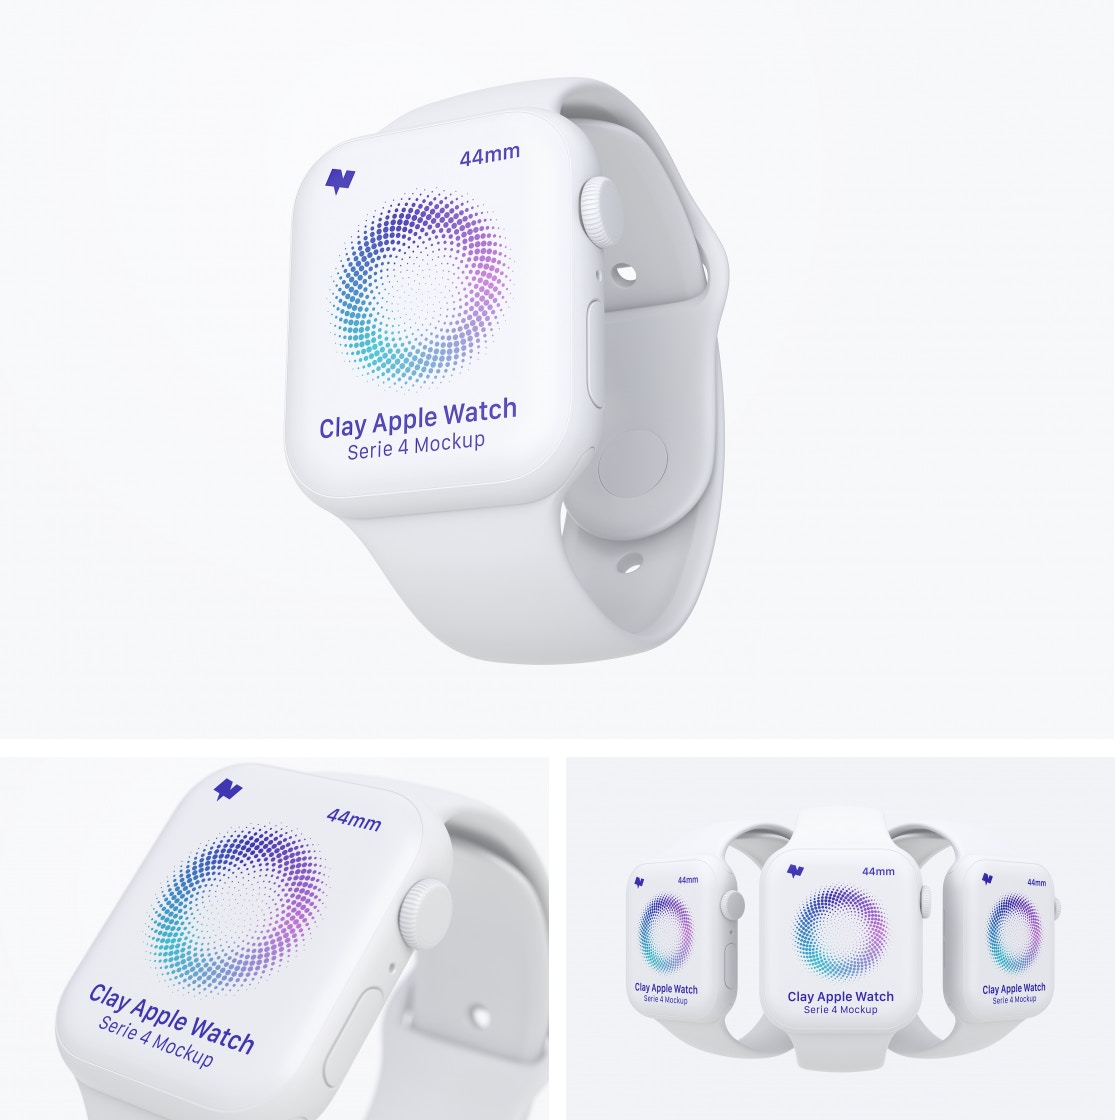 Clay Apple Watch Series 4 (44mm) Mockups by Original Mockups on Original Mockups